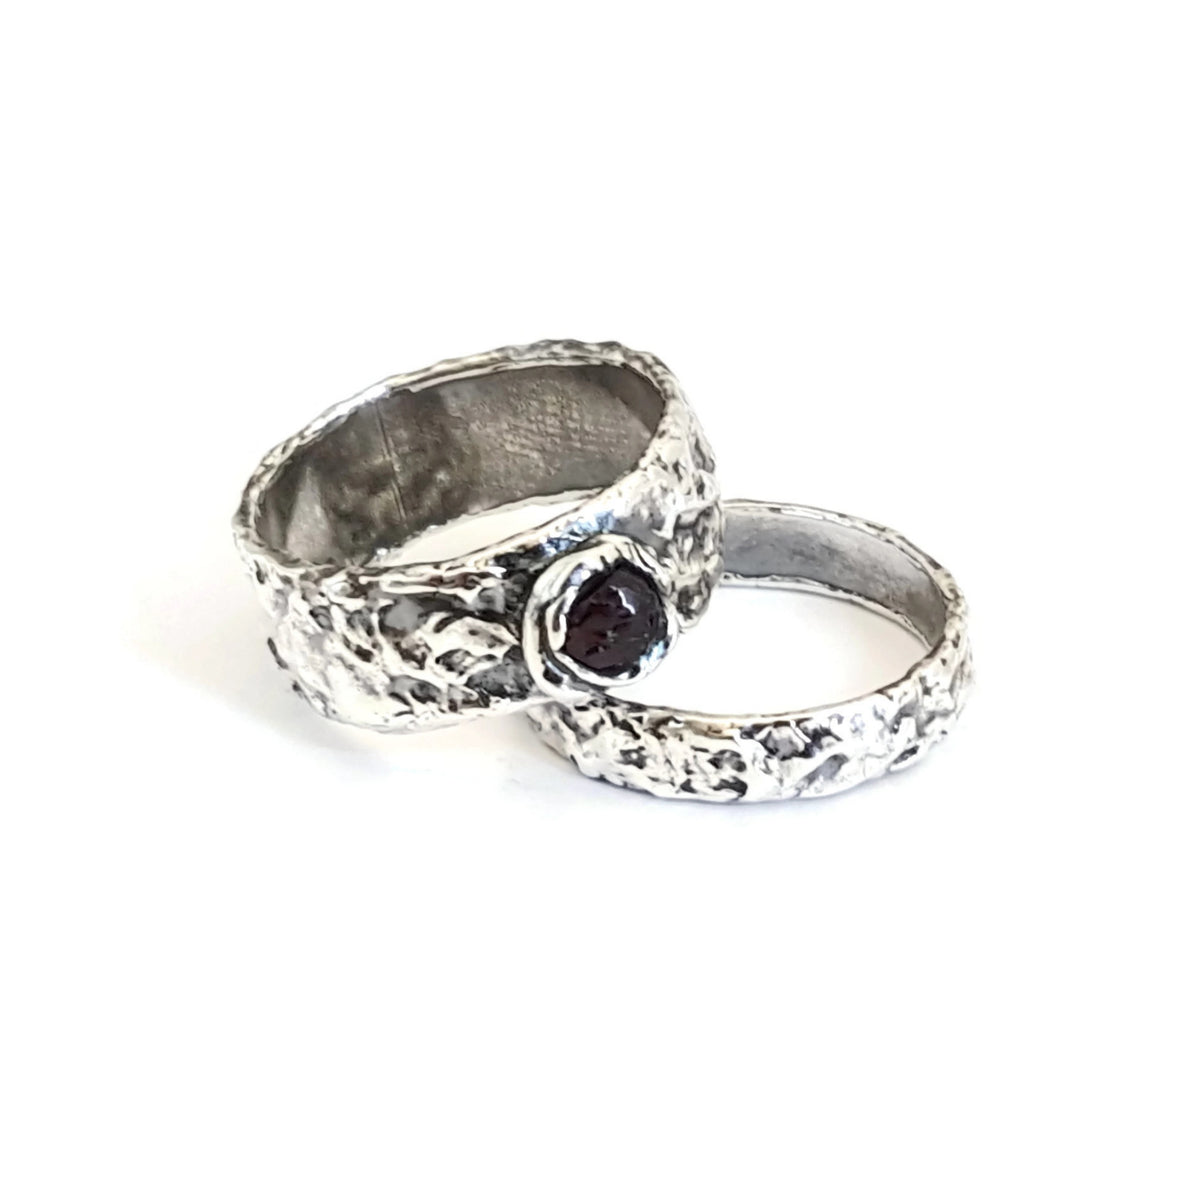 Two textured fine silver rings made with silver metal clay. One features a raw garnet gem-stone.